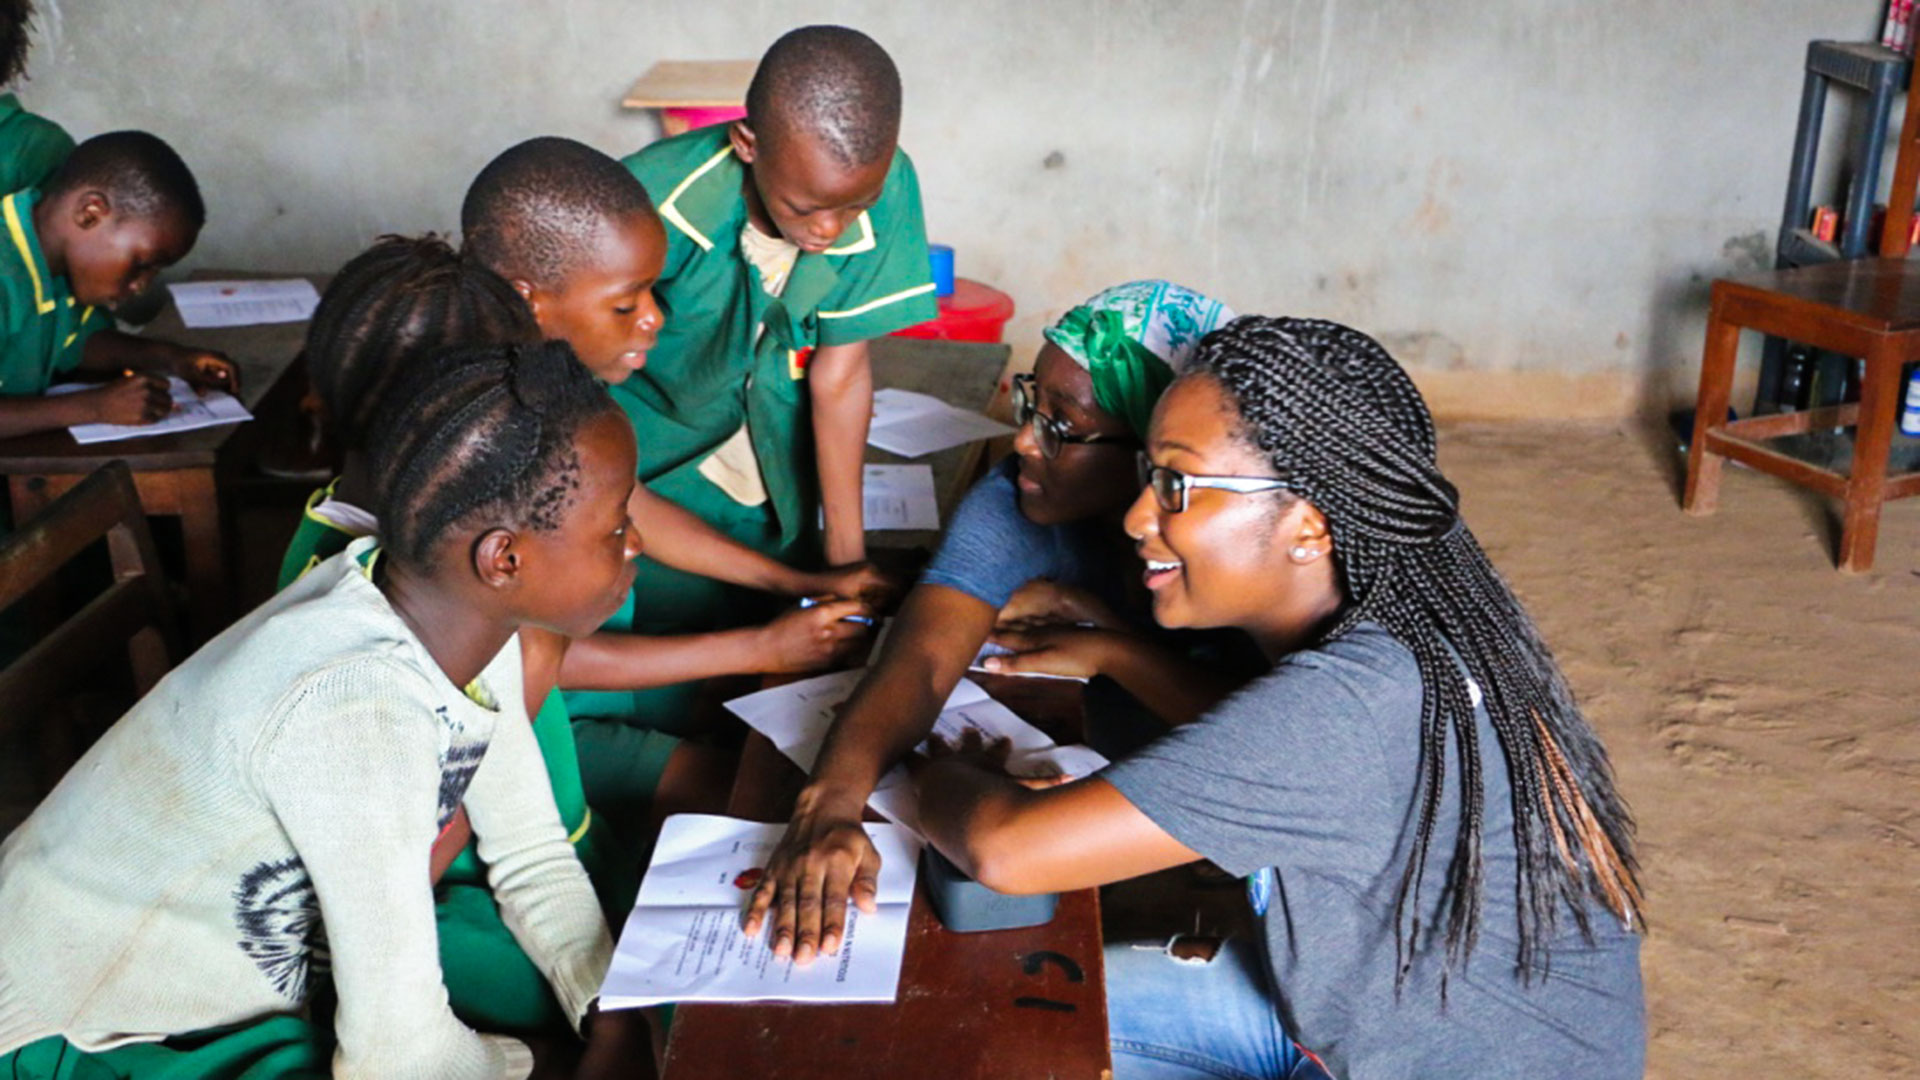 As part of Public Health Without Borders, Kelsie Challenger, a behavioral and community health major, interacts with students in Calaba Town, Sierra Leone. Inspired by such work, School of Public Health Professor Pamela I. Clark (below) made a $1.15 million gift to support the Global Health Initiative. (Photo courtesy of the School of Public Health; Clark headshot by John T. Consoli)